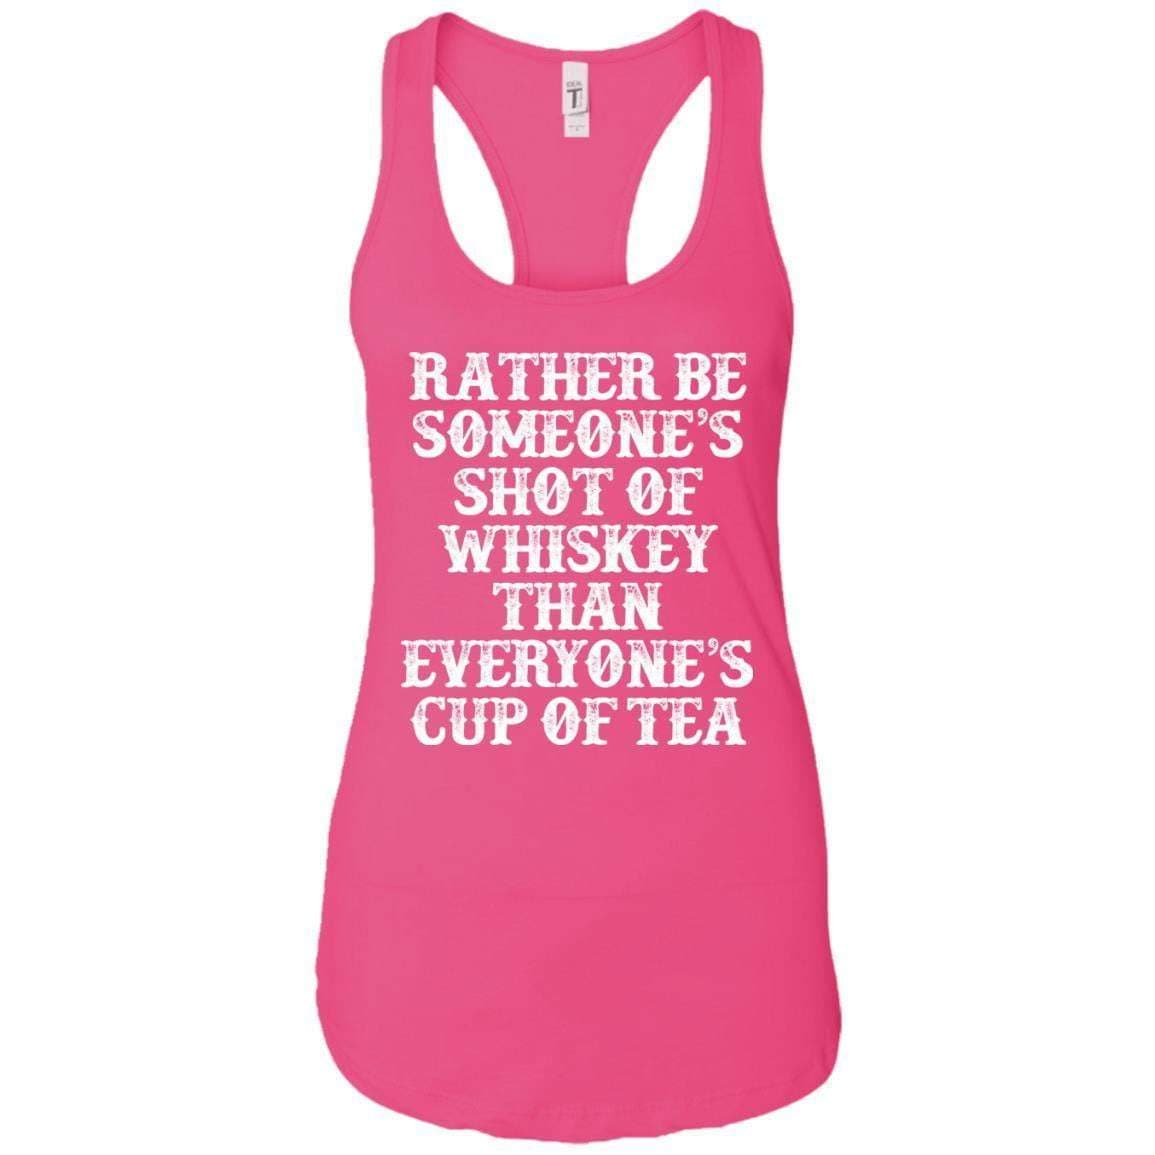 Rather Be Someone's Shot of Whiskey Women's Racerback Tank